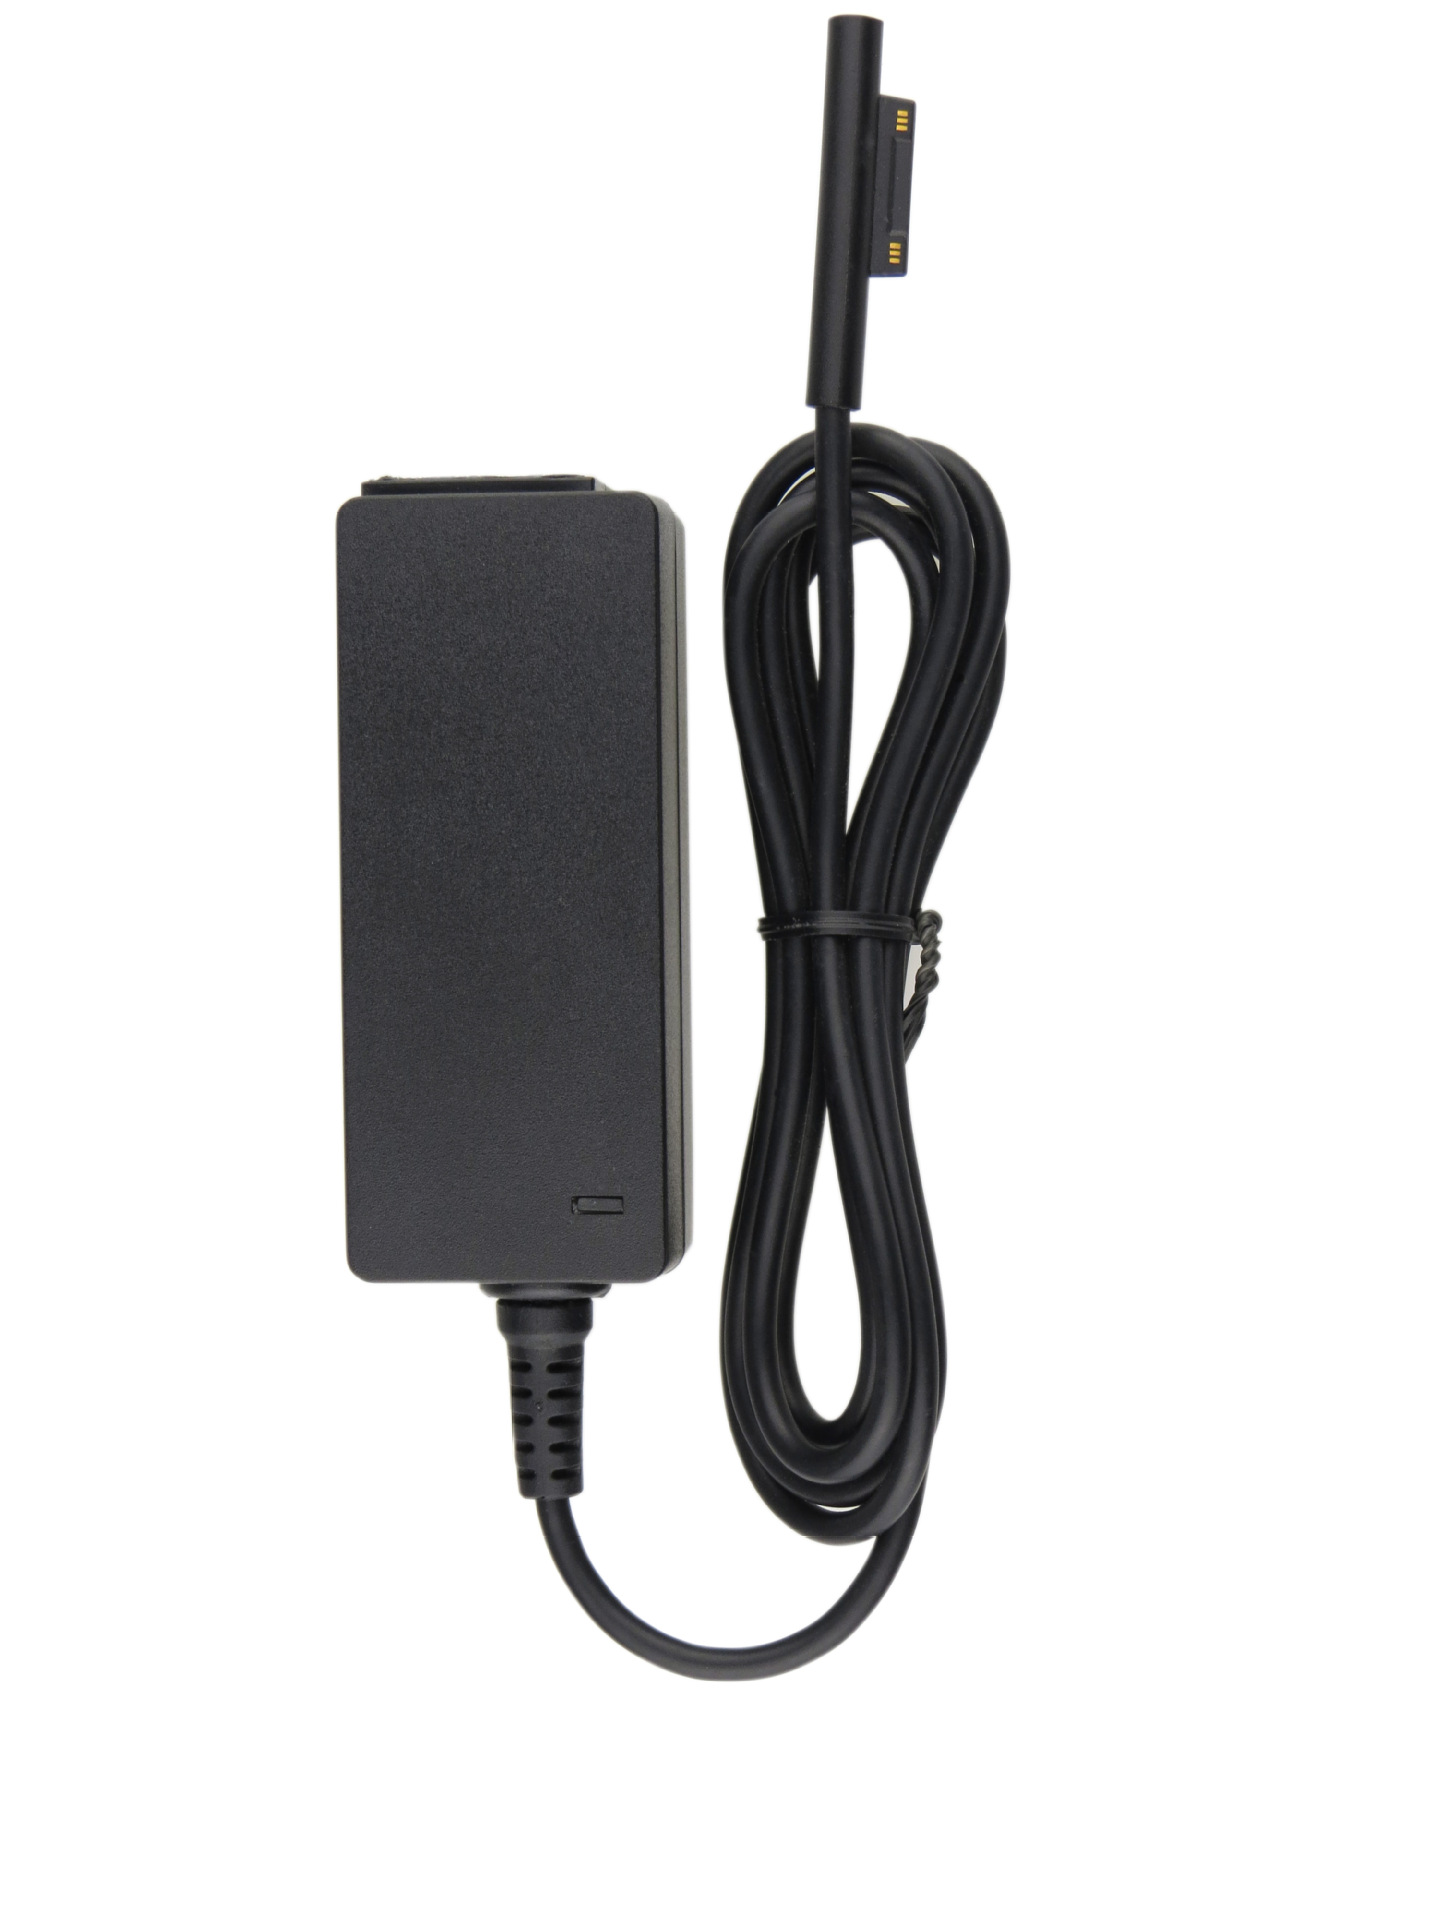 12V 2.58A 36W Power Adapter Oplader voor Microsoft Surface Pro 3 - Notebook accessoires - Foto 2